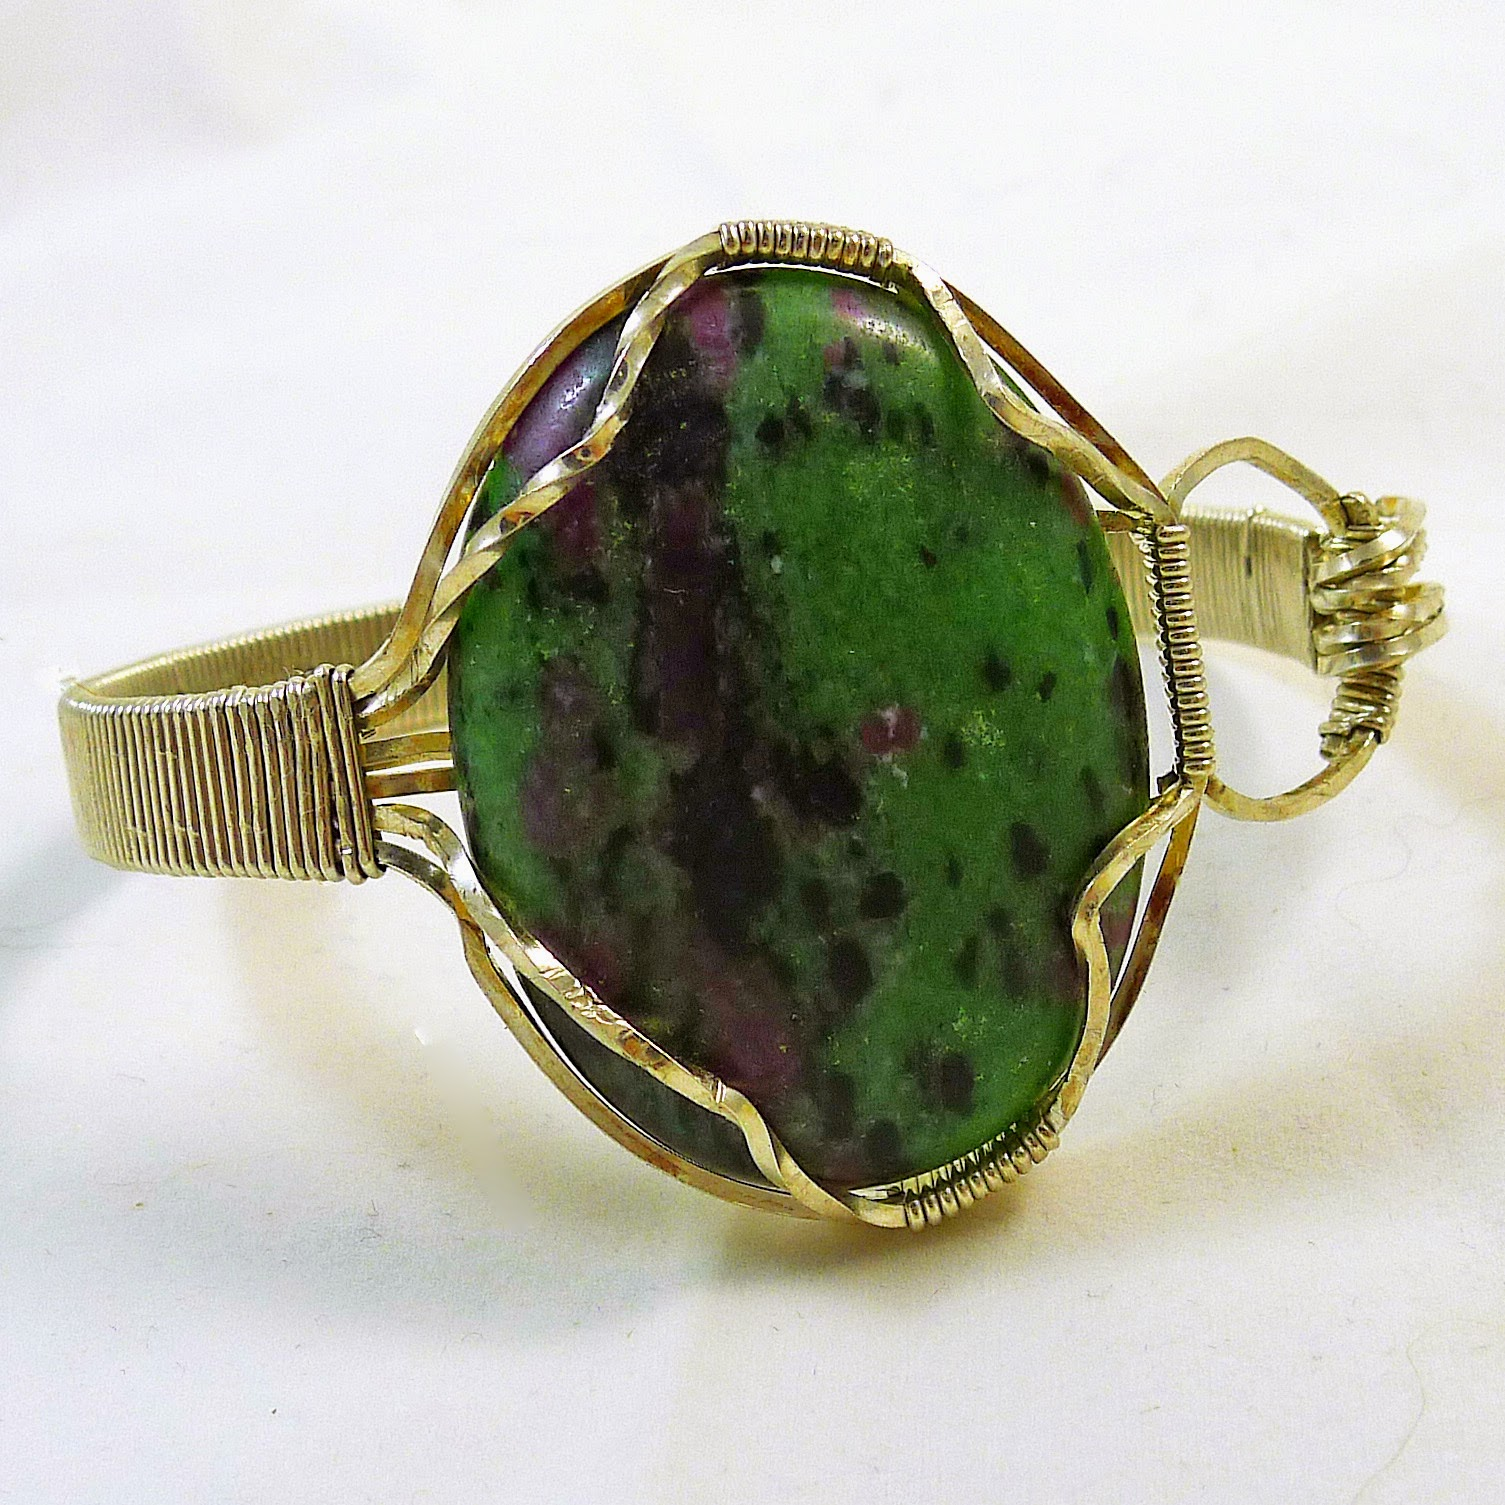 http://www.shazzabethcreations.co.nz/#!product/prd1/2228422911/ruby-in-zoisite-sterling-wired-bangle